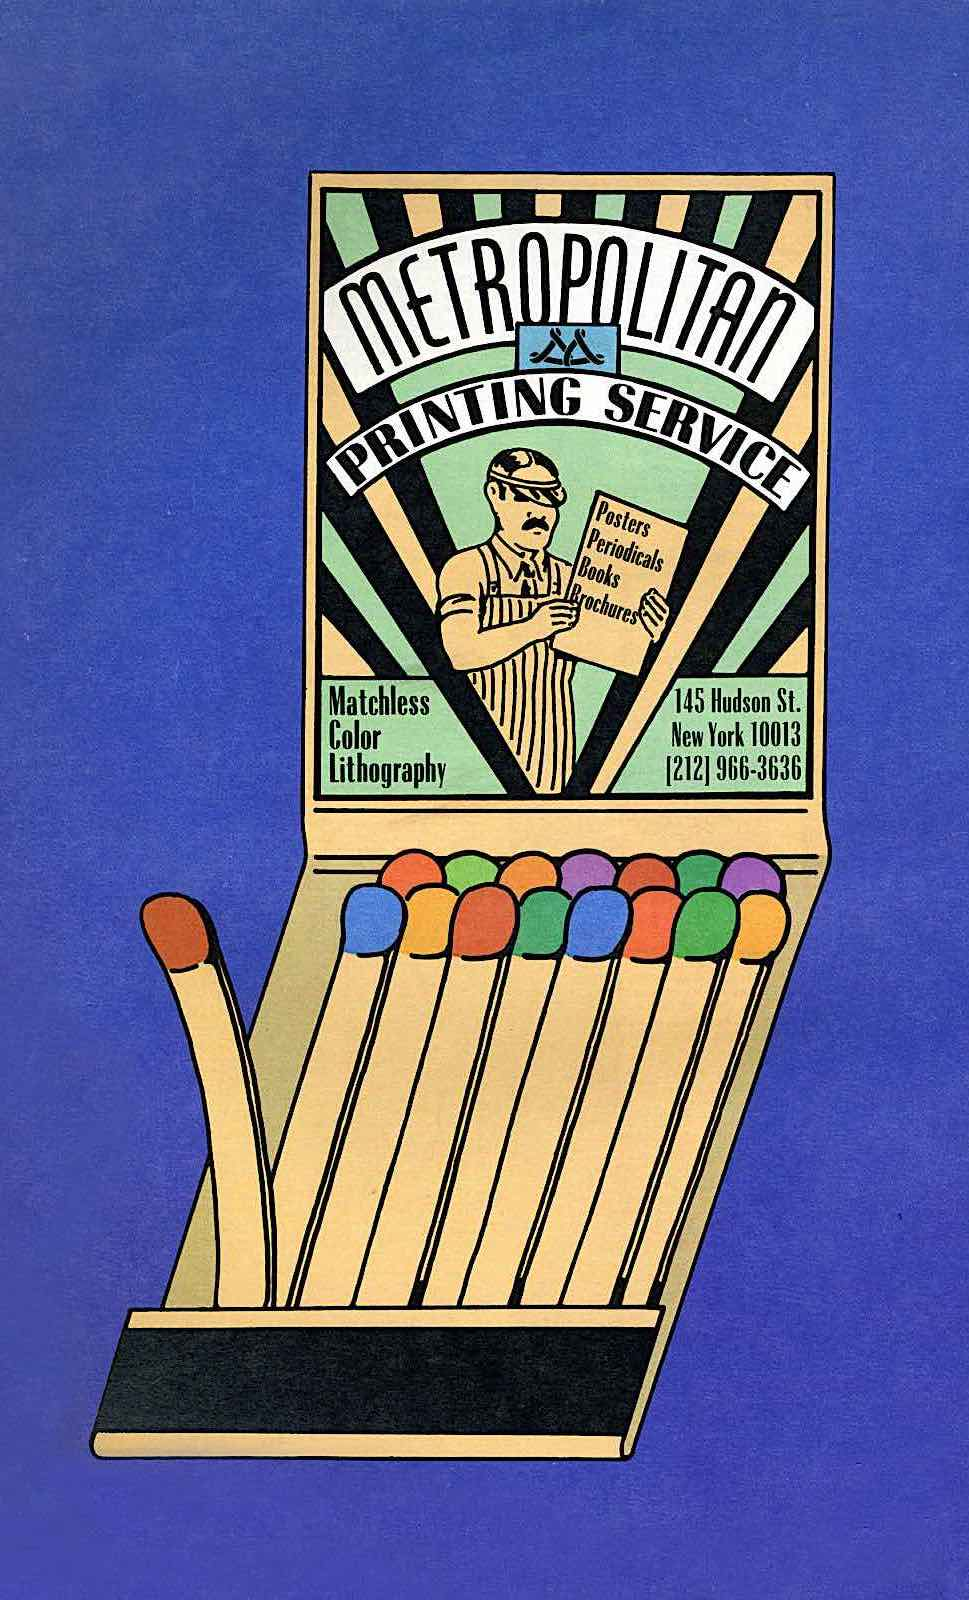 a Seymour Chwast illustration of a matchbook advertising Metropolitan Printing Service